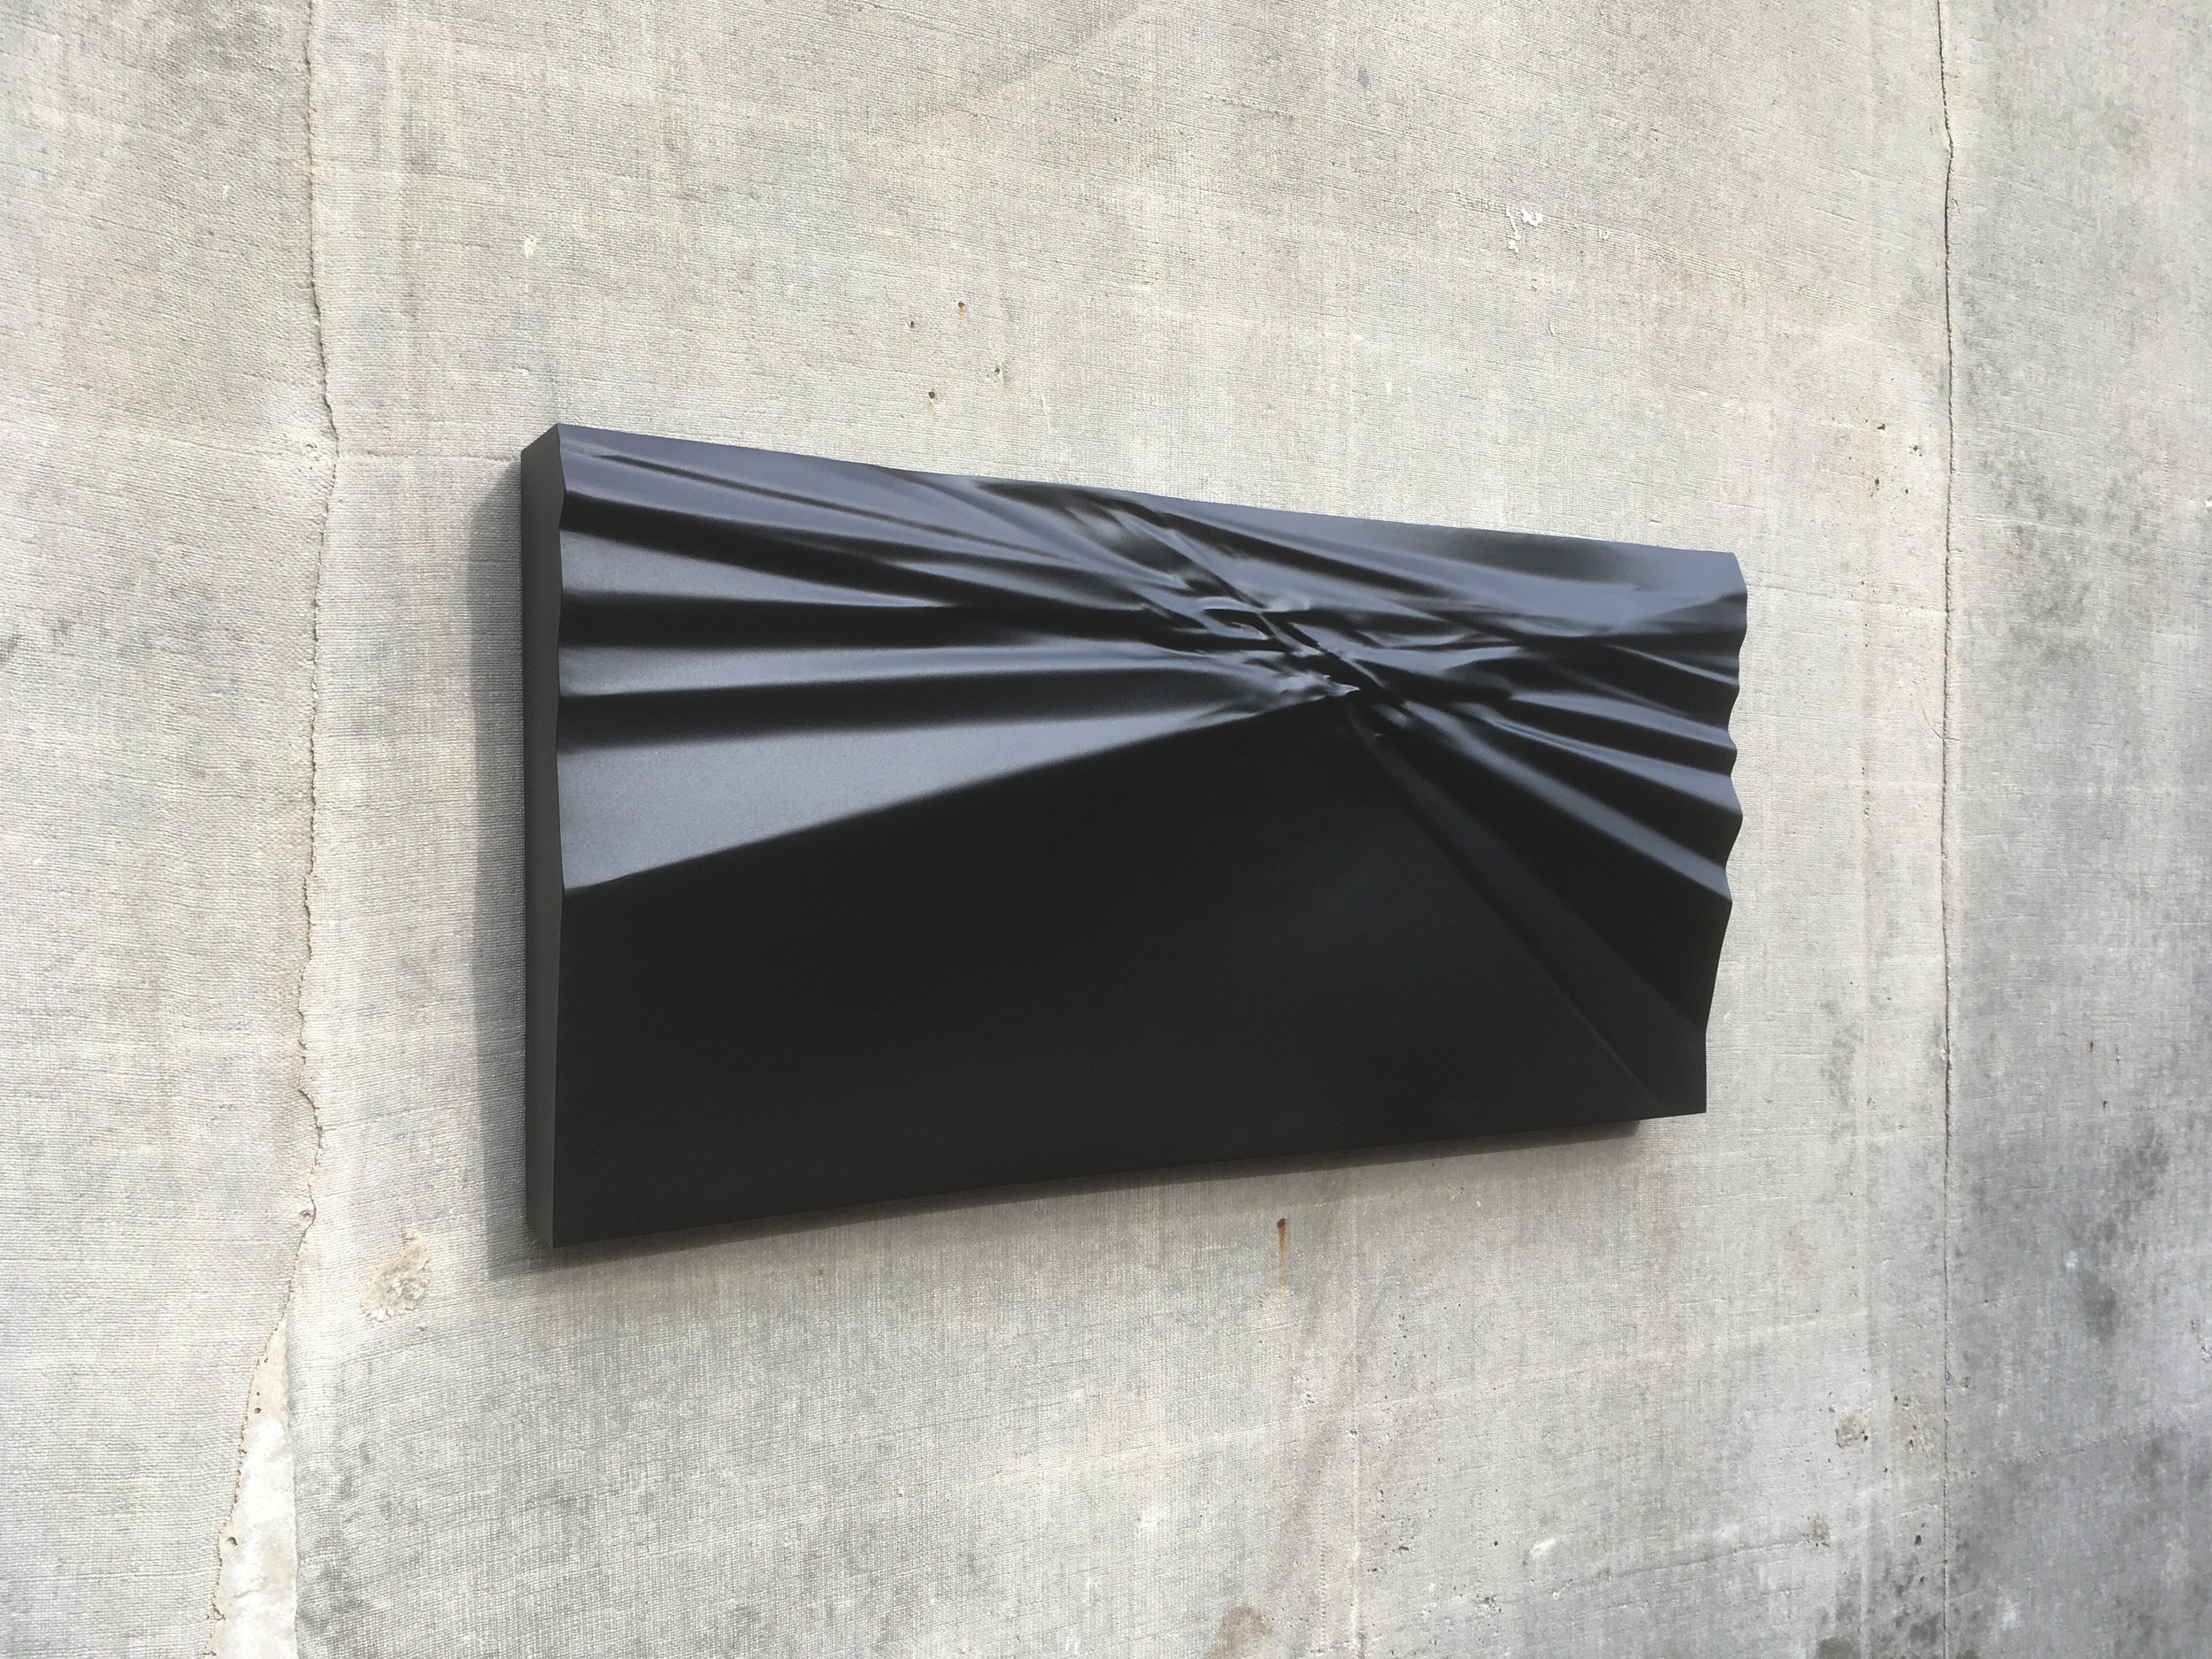 DAN LORRIMER SCULPTURE WORKS  At the heart of his practice is a deep understanding of materials and processes with an emphasis on creating new ways to utilise these technologies in the fields of art and design. His work illustrates a keen sense of exploration through making.  Dan explores notions of movement, energy, solidity and illusion through minimalist sculptural forms, often located between the artificial and natural world. Dan has exhibited works across Australia and has been the recipient of several notable awards.